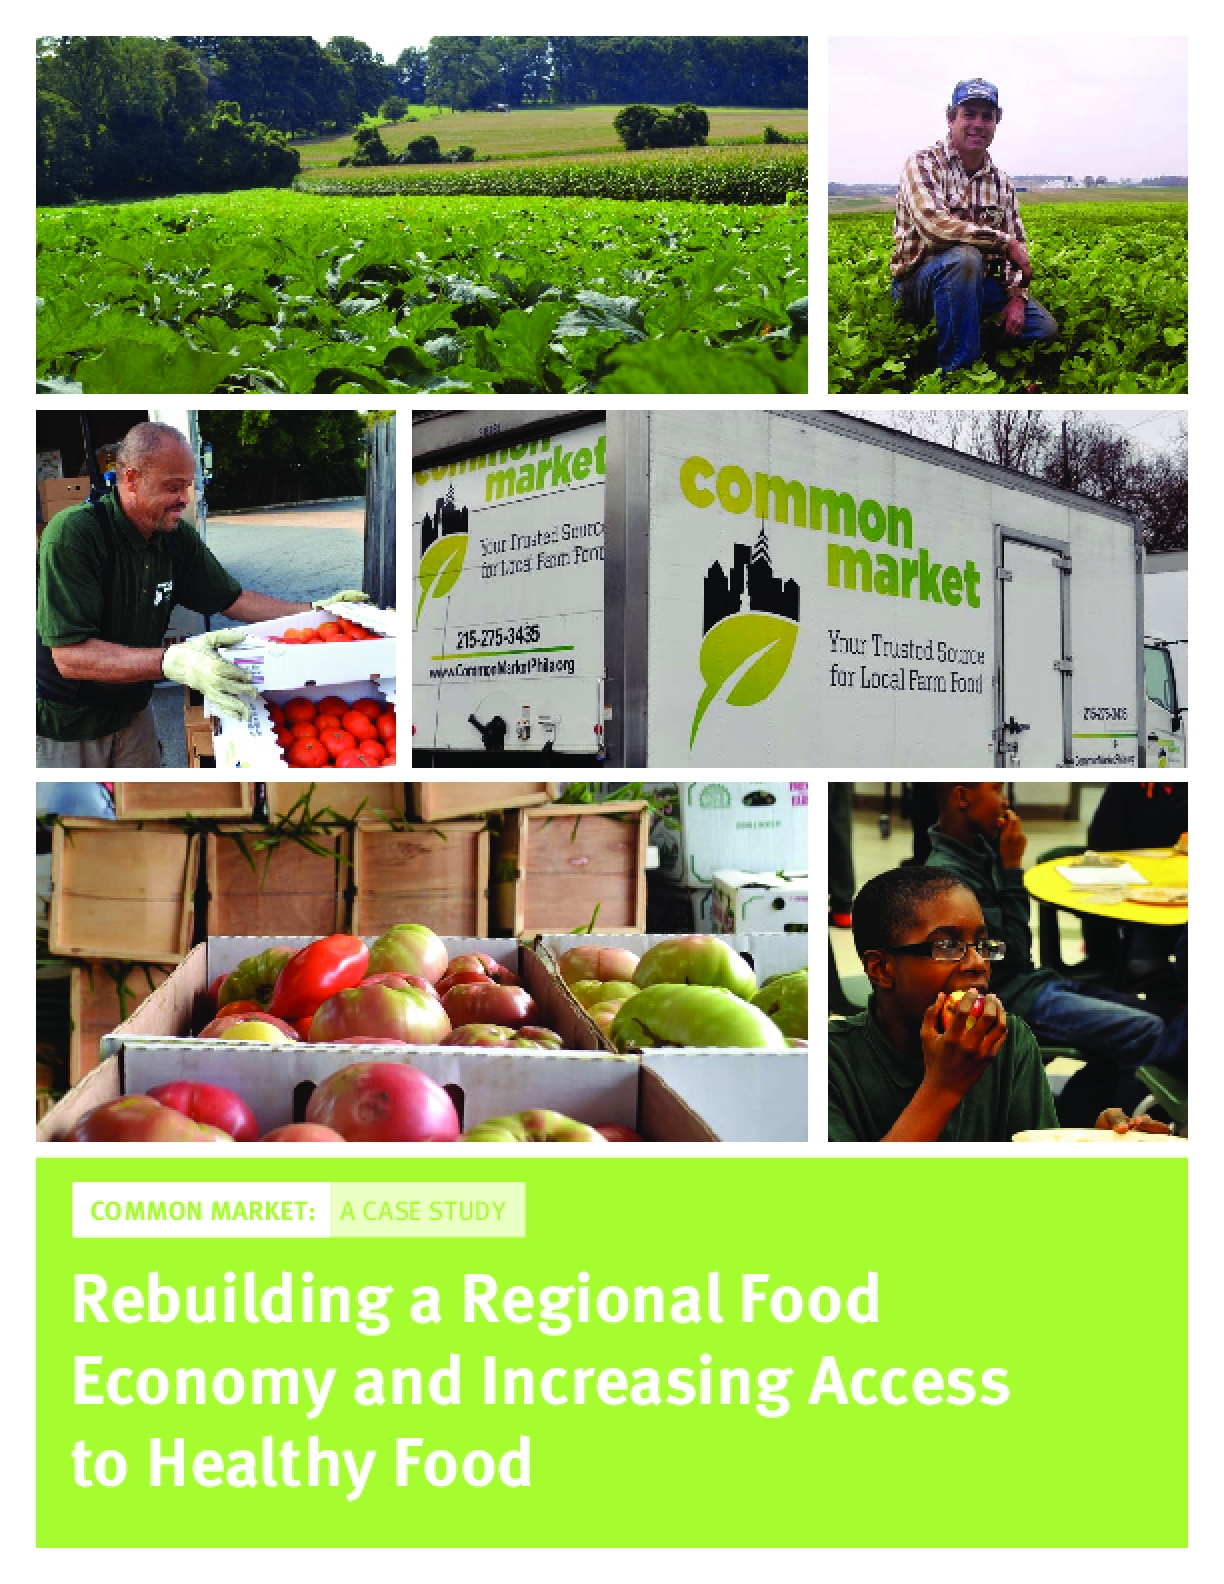 Rebuilding a Regional Food Economy and Increasing Access to Healthy Food